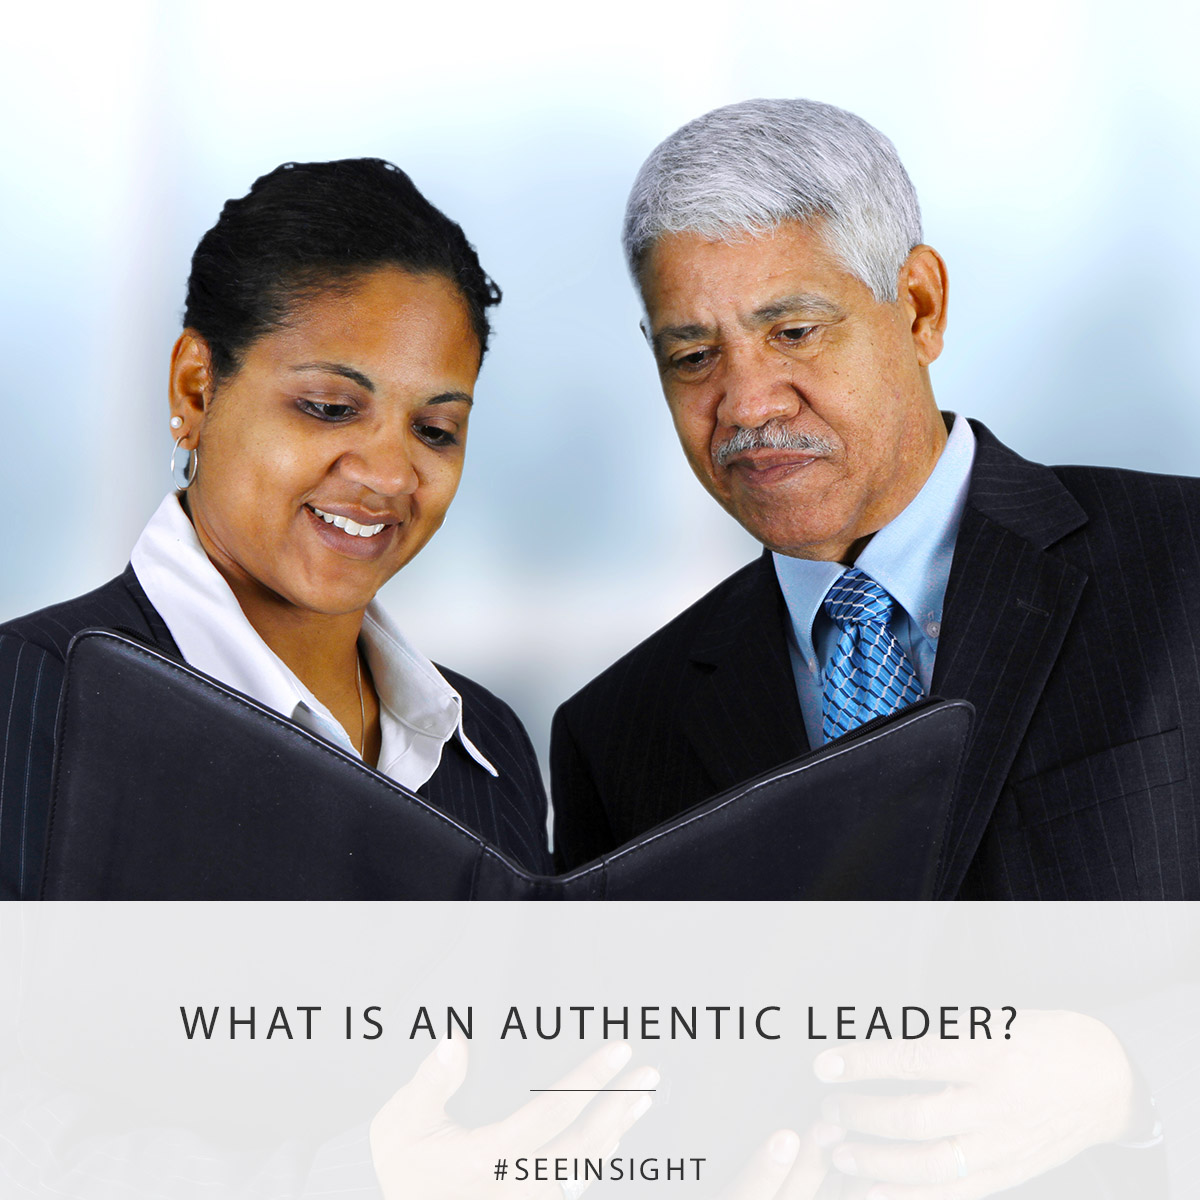 What is an Authentic Leader?